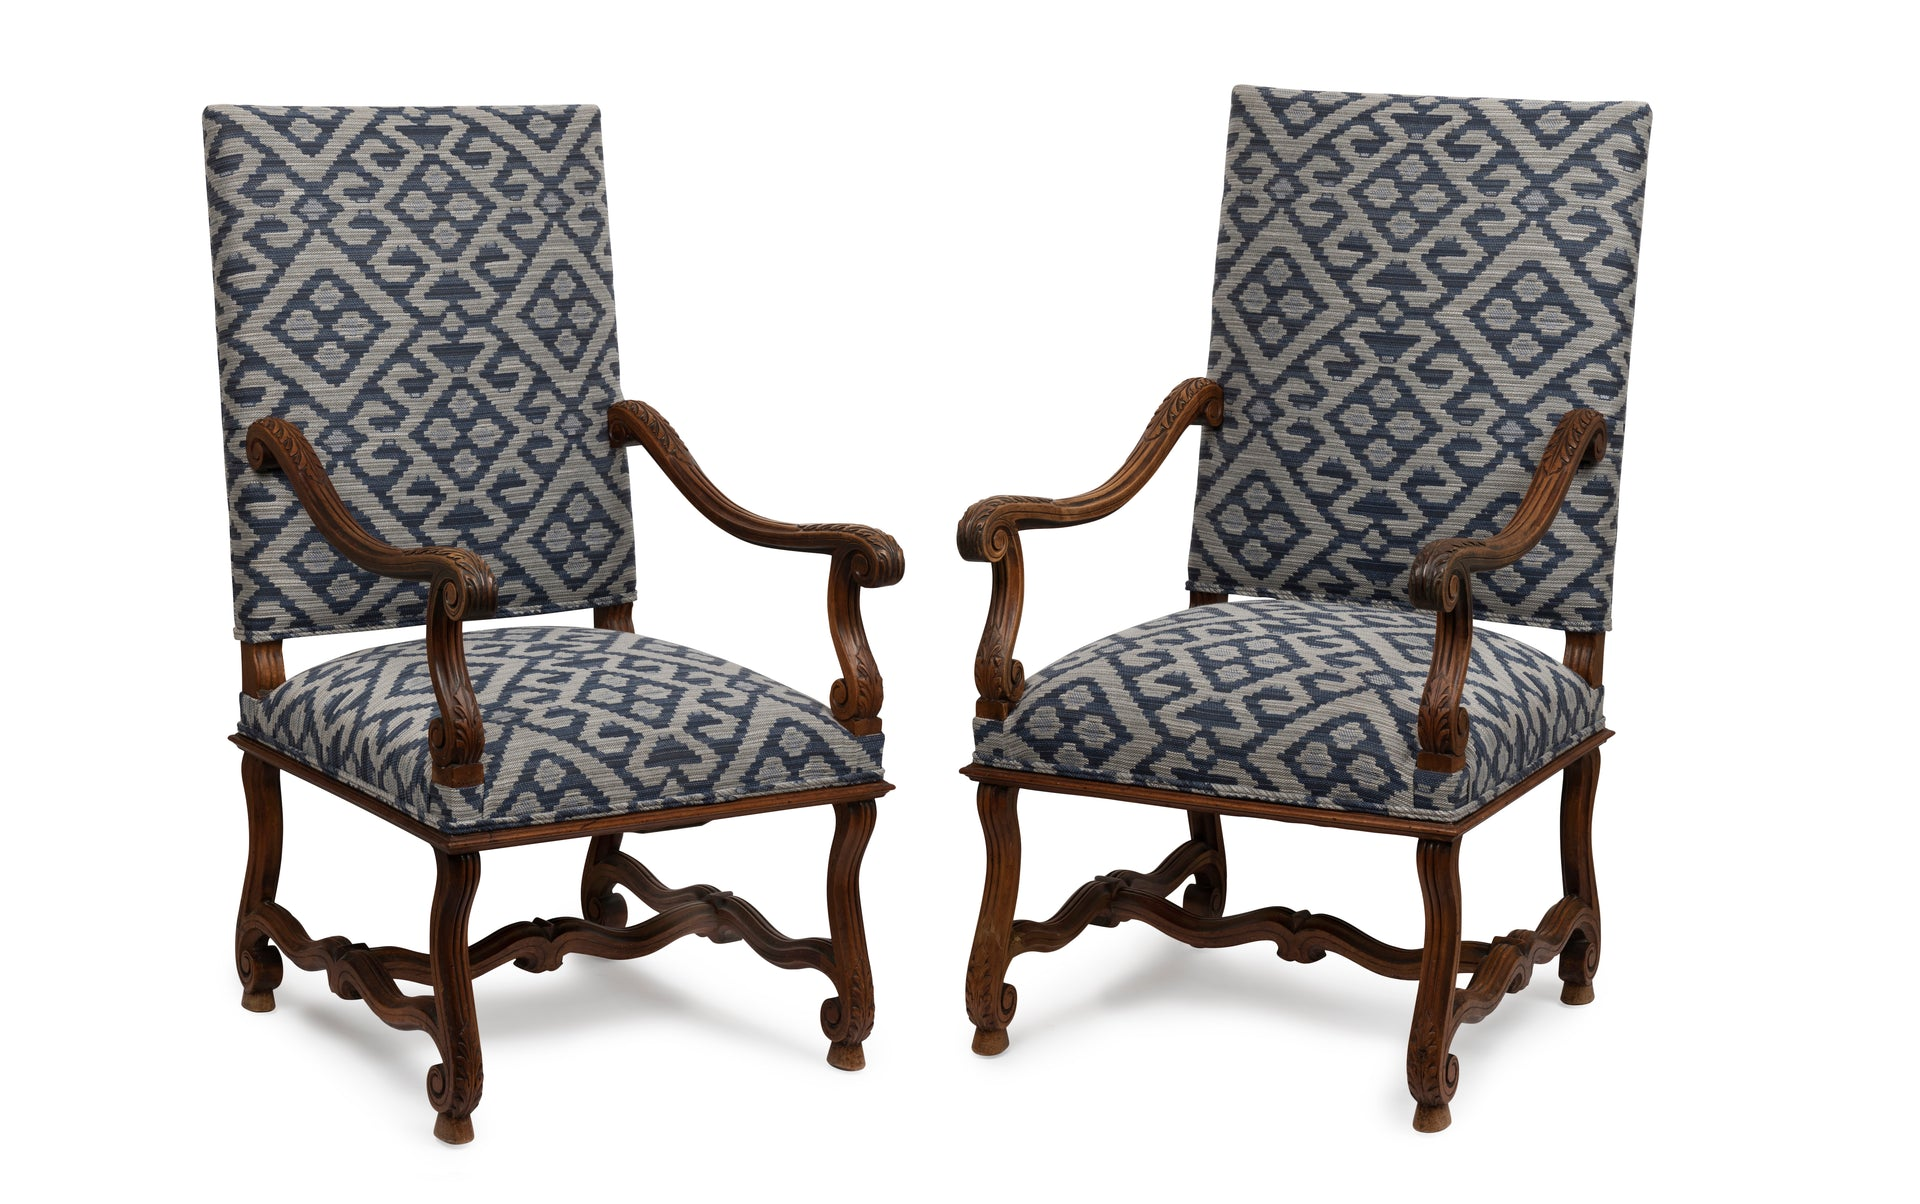 A pair of acanthus design carved walnut armchairs, French 19th Century